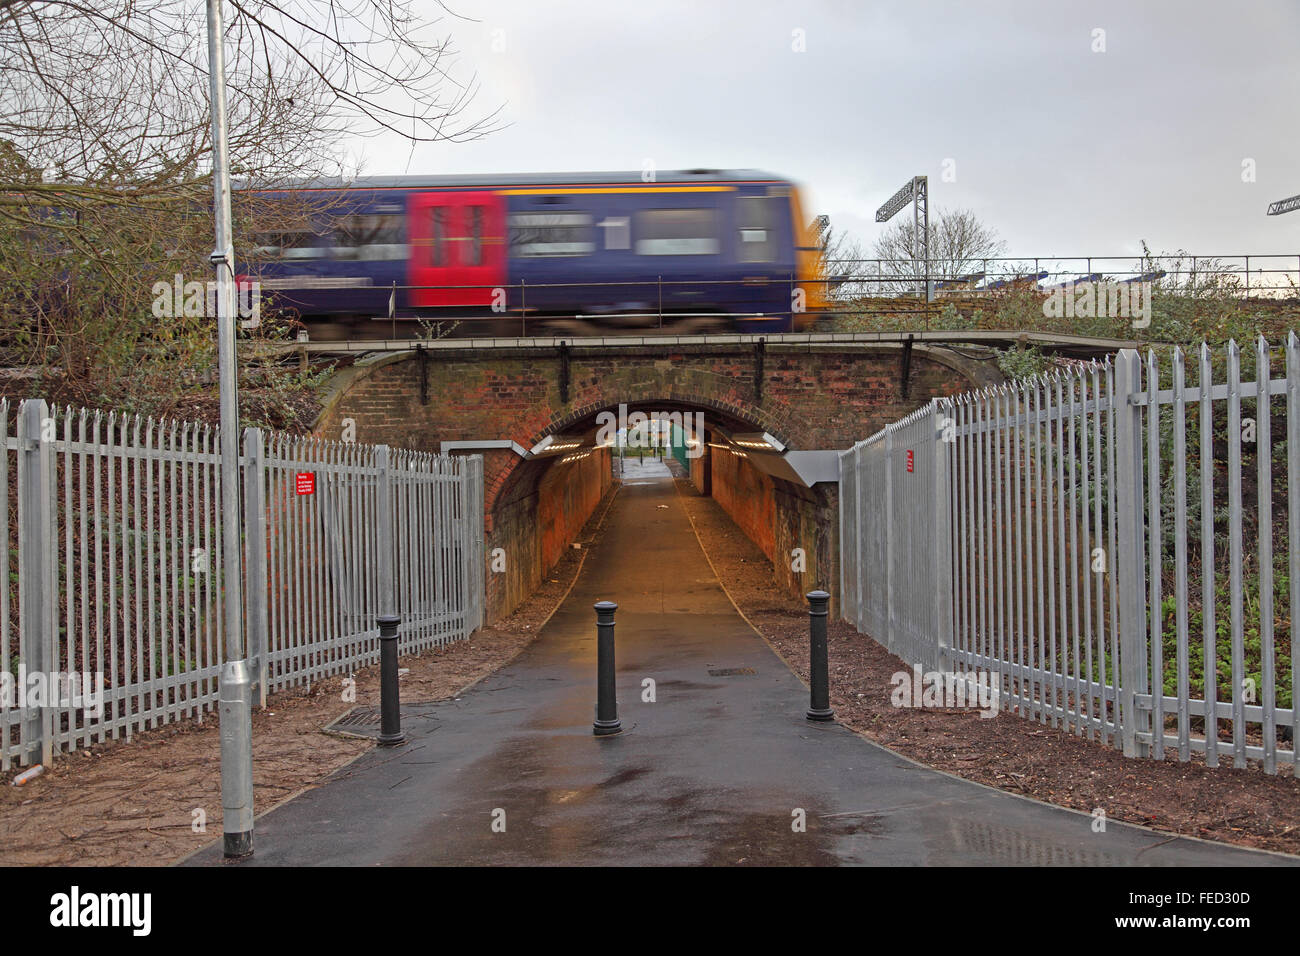 An old tunnel converted to a footpath/cycleway newly opened and brightly lit with a speeding train passing over - Stock Image